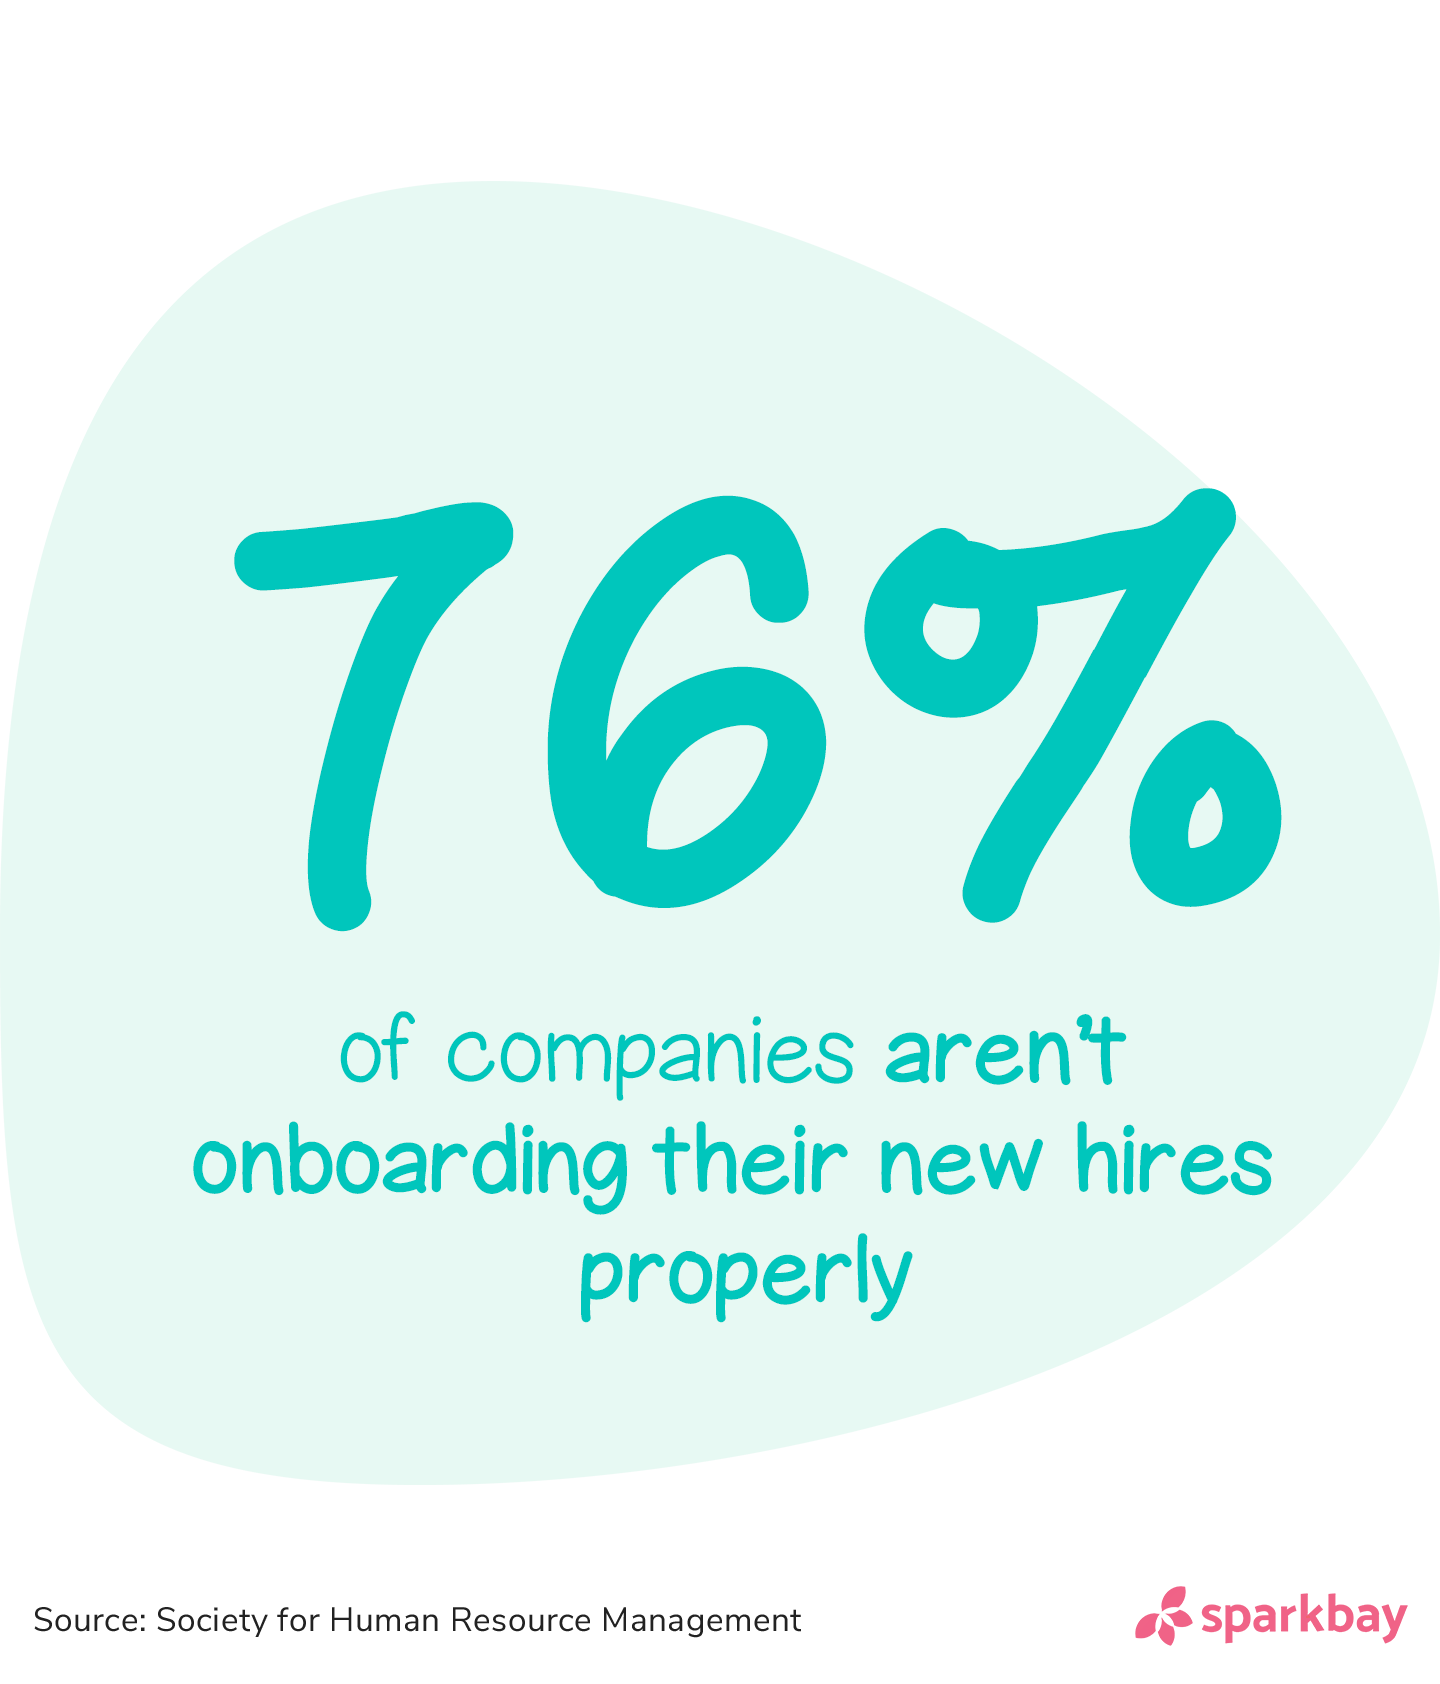 Employee onboarding statistics: 76% of companies aren't onboarding their new hires properly.'